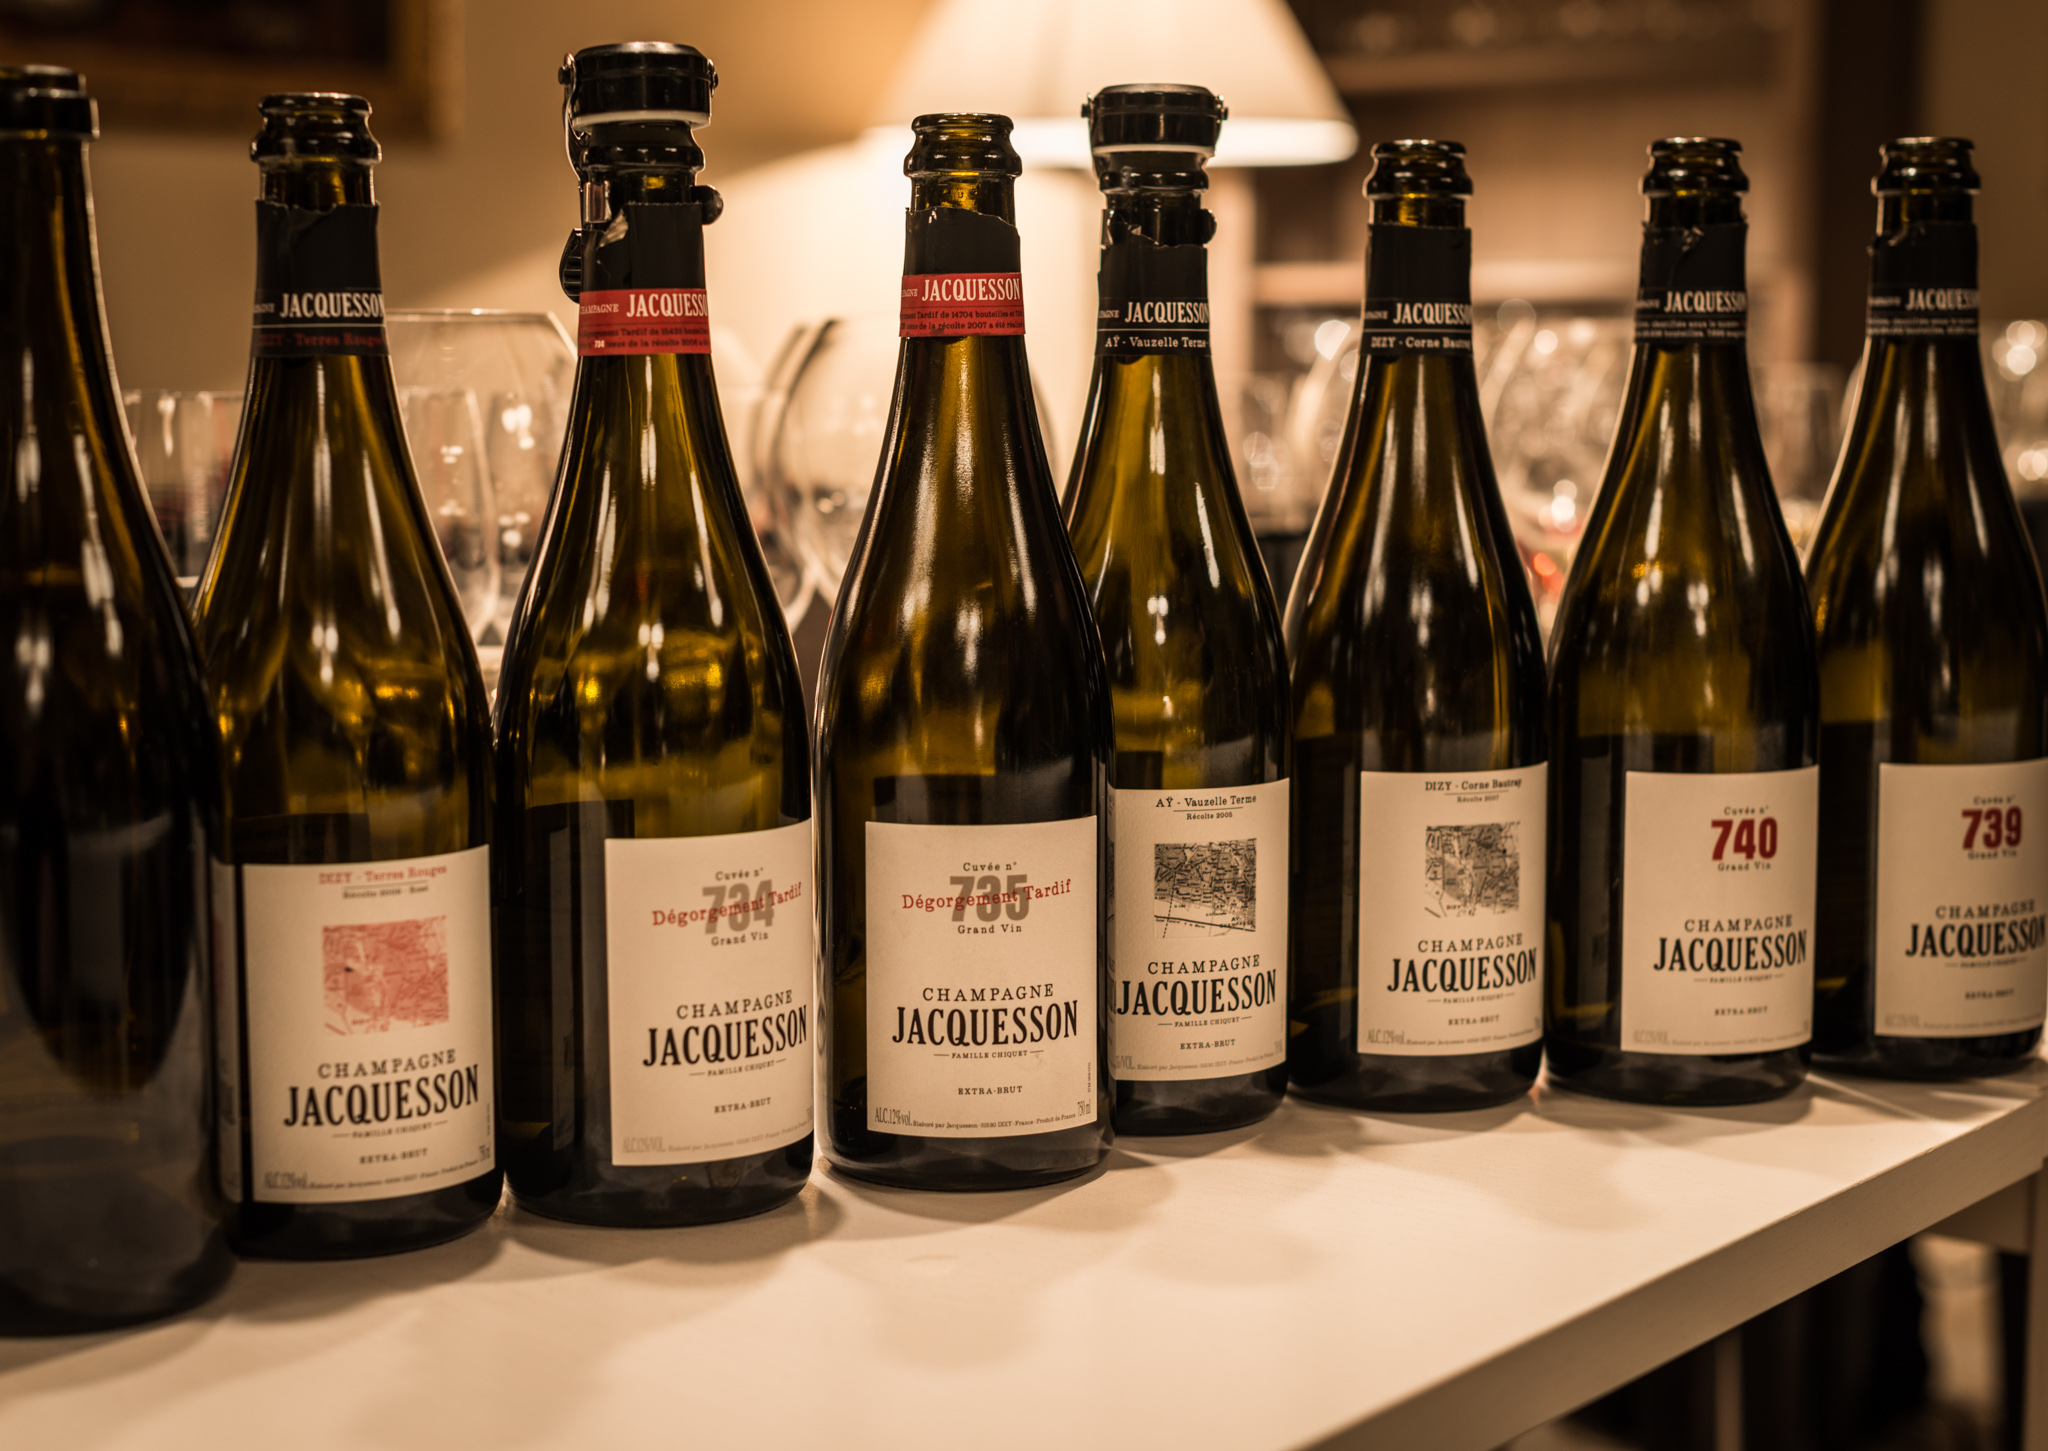 France : Champagne : Tasting through the impressive lineup at Jacquesson